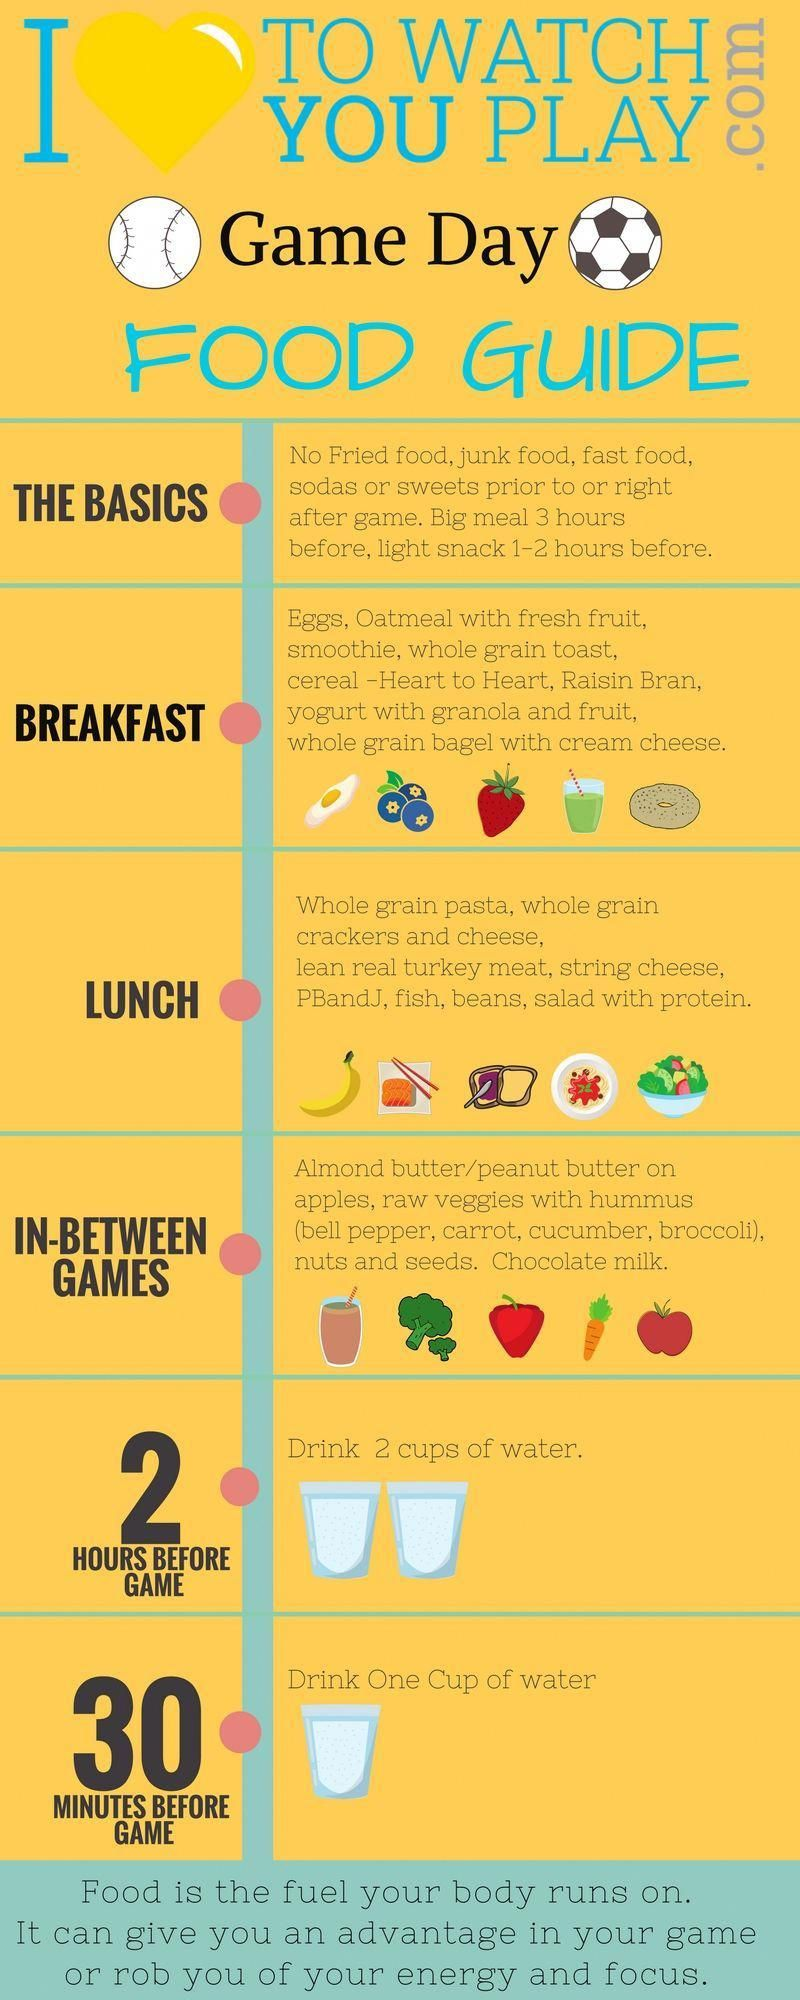 Food is fuel! Here's an easy guide to the best food options for your young athlete to consume on the day of a game. #HealthySnacksforAthletes #athletefood